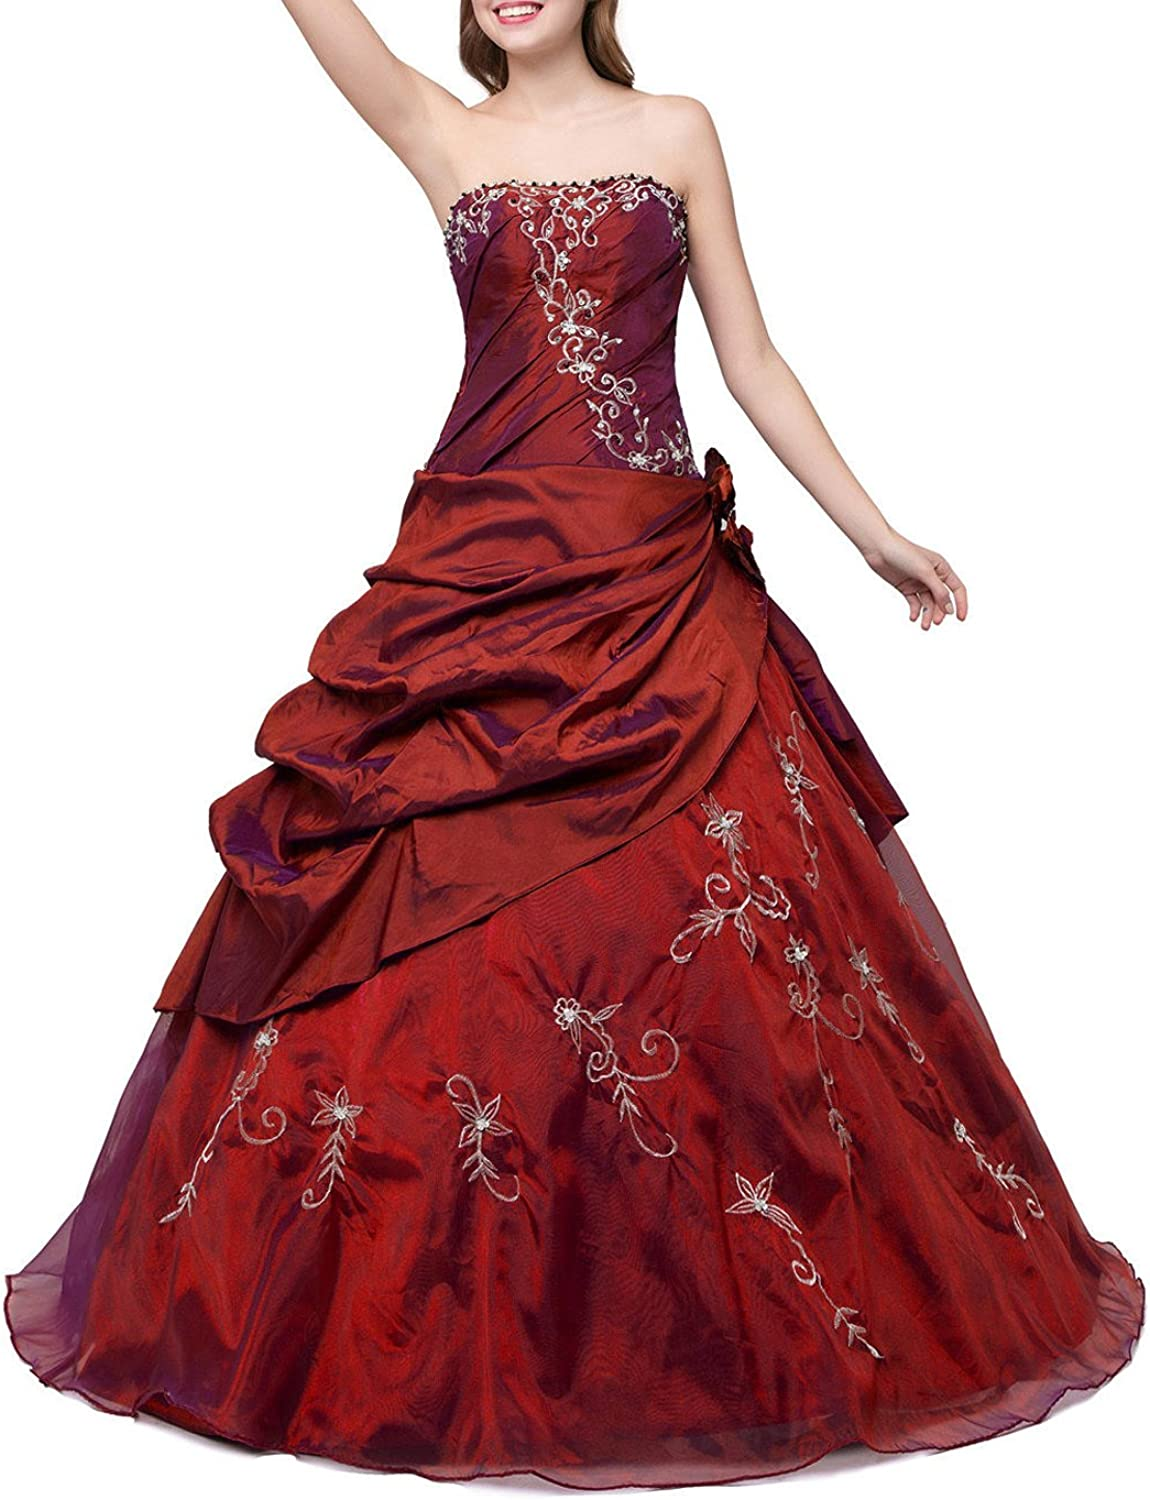 Liaoye Strapless Embroidery Prom Dress Pleated Quinceanera Ball Gown